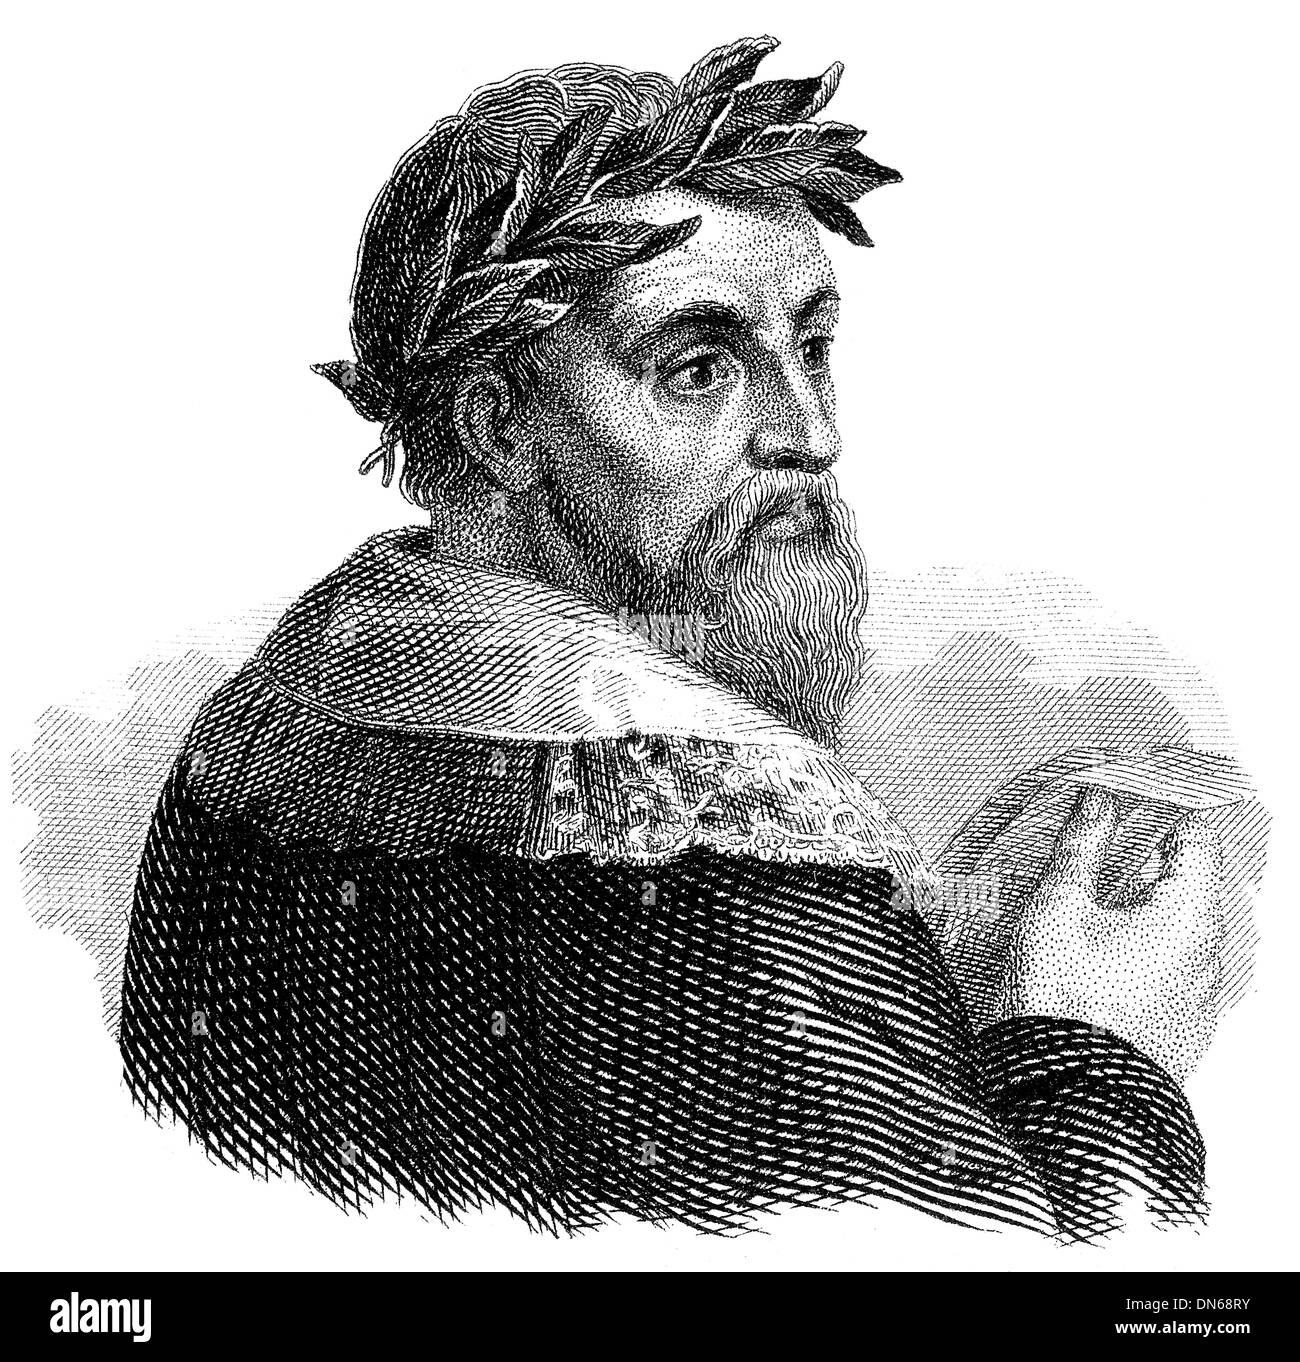 portrait of Ludovico Ariosto or Ariost, 1474 - 1533, an Italian humanist, author and soldier, - Stock Image